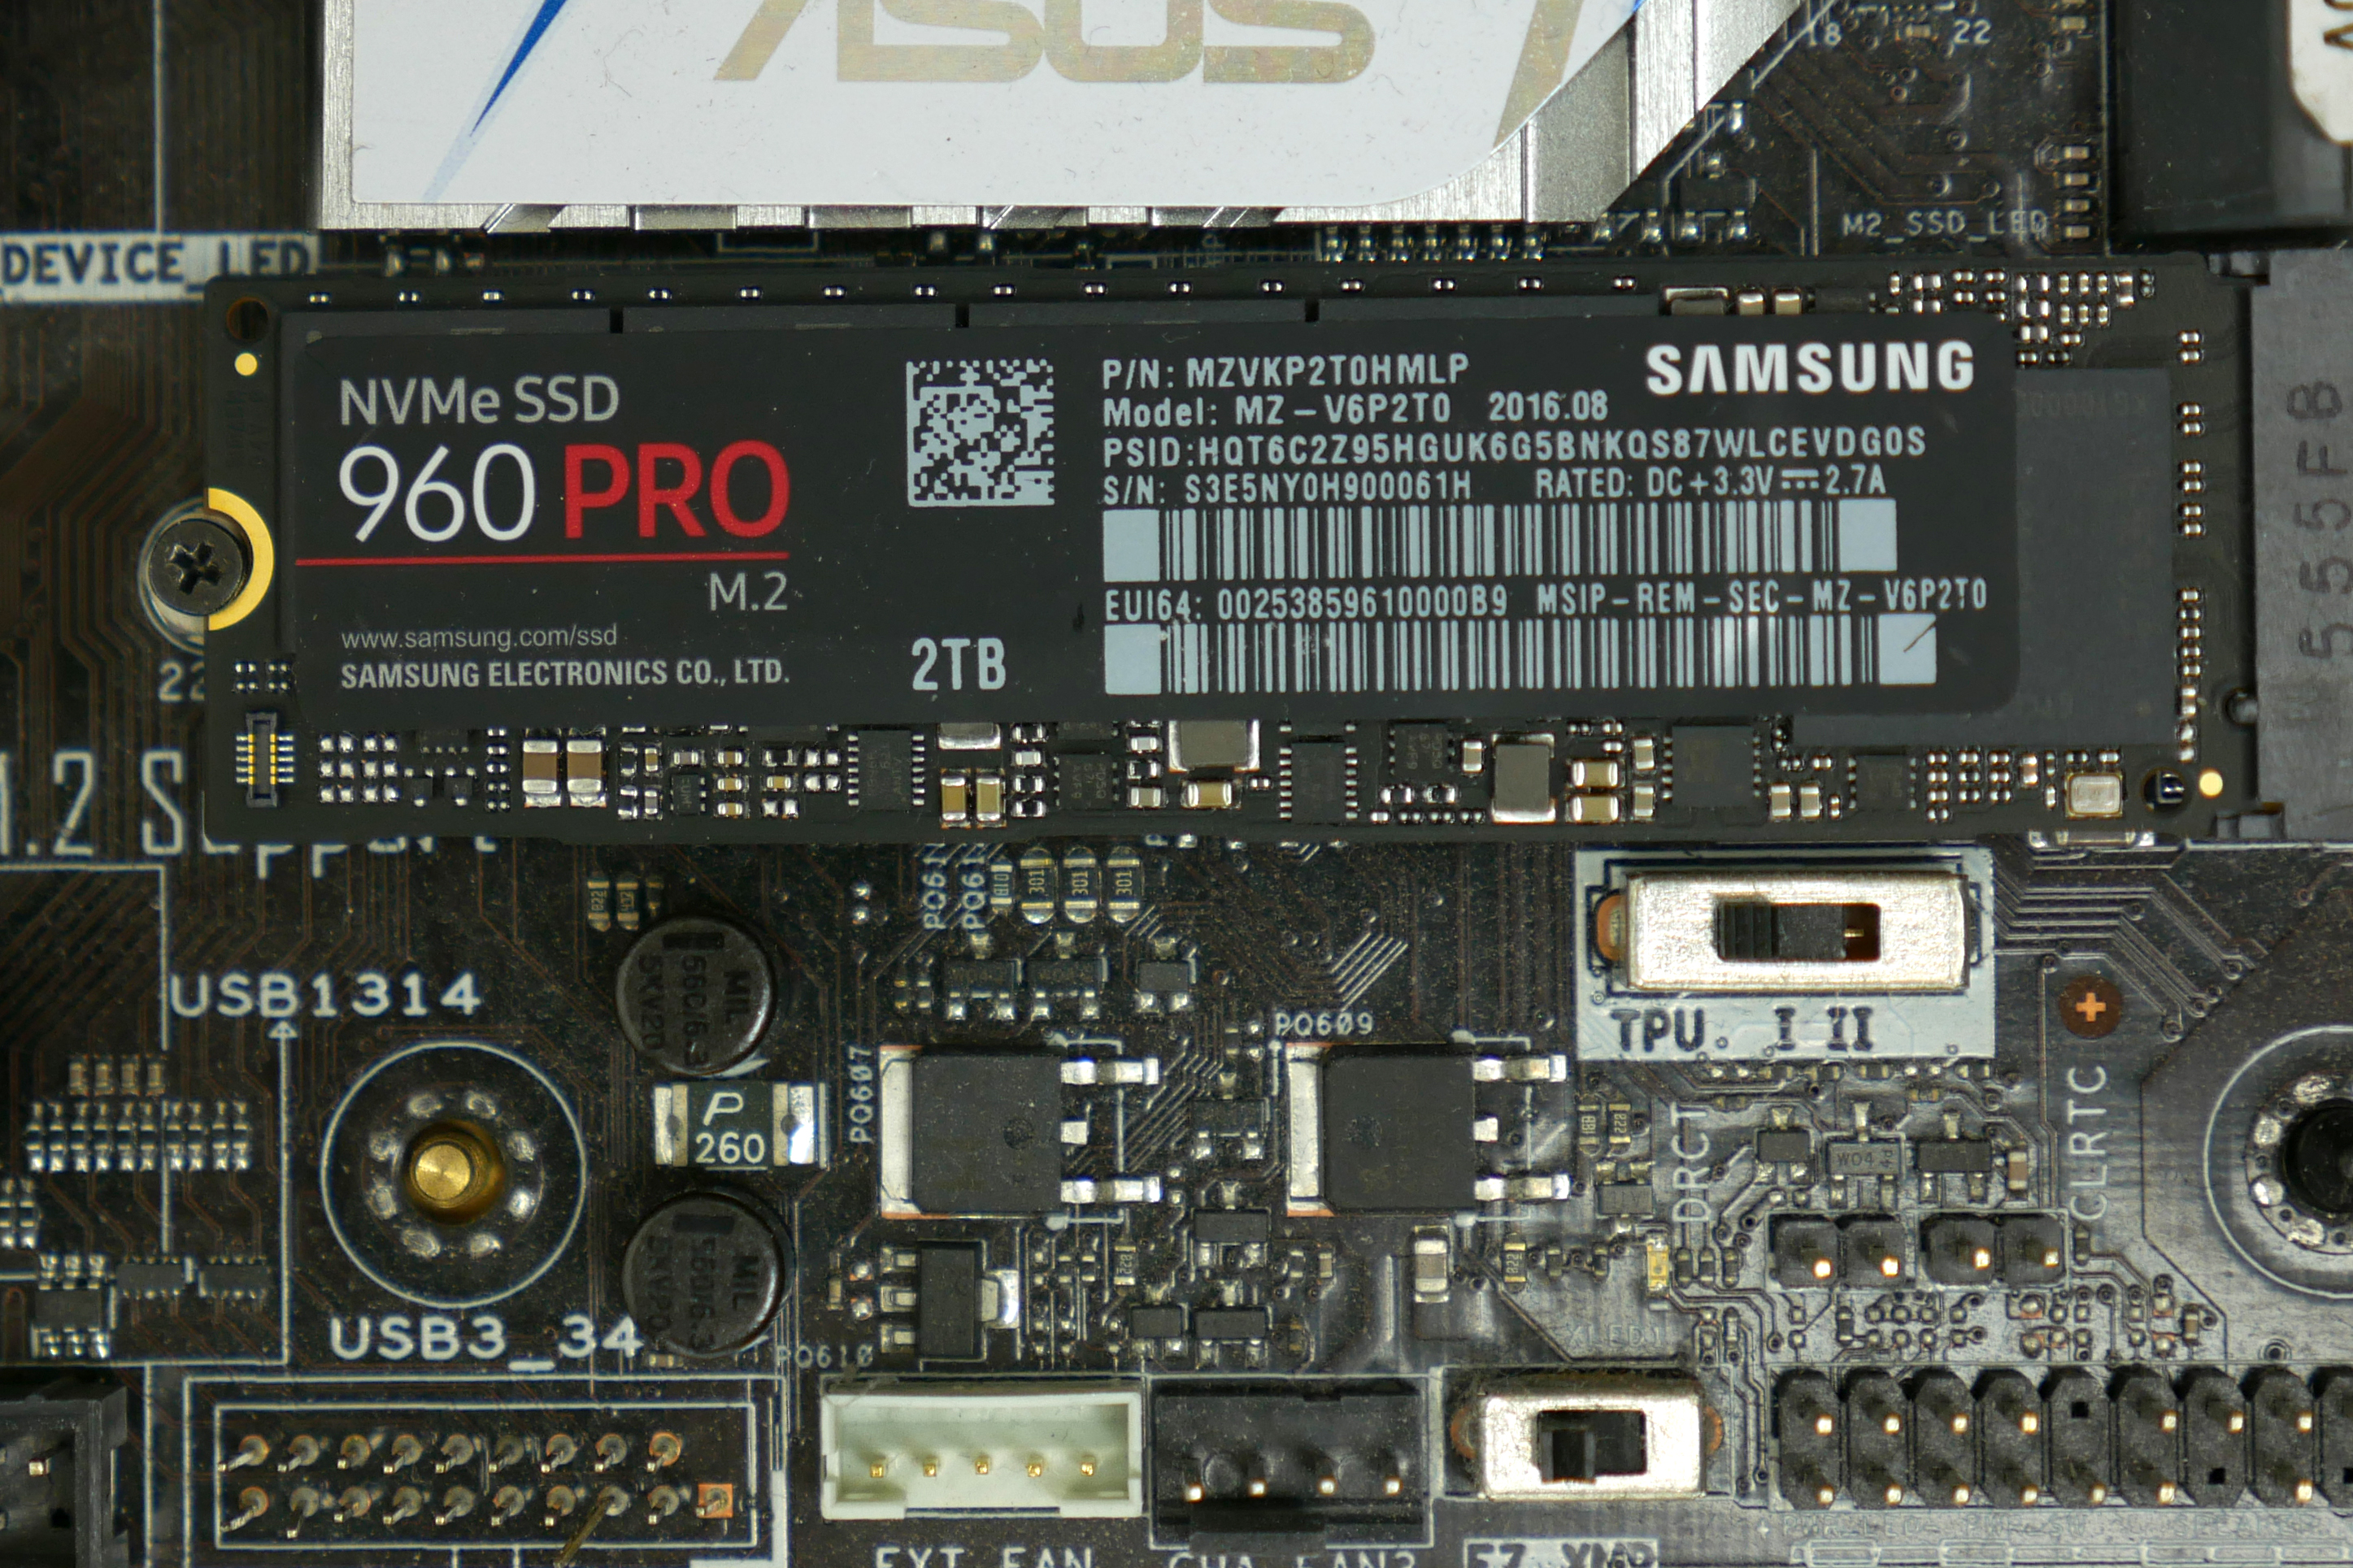 Samsung 960 Pro Review The Fastest Consumer Ssd You Can Buy Ars 860 Evo 25 Inch Sata Iii 250gb Enlarge